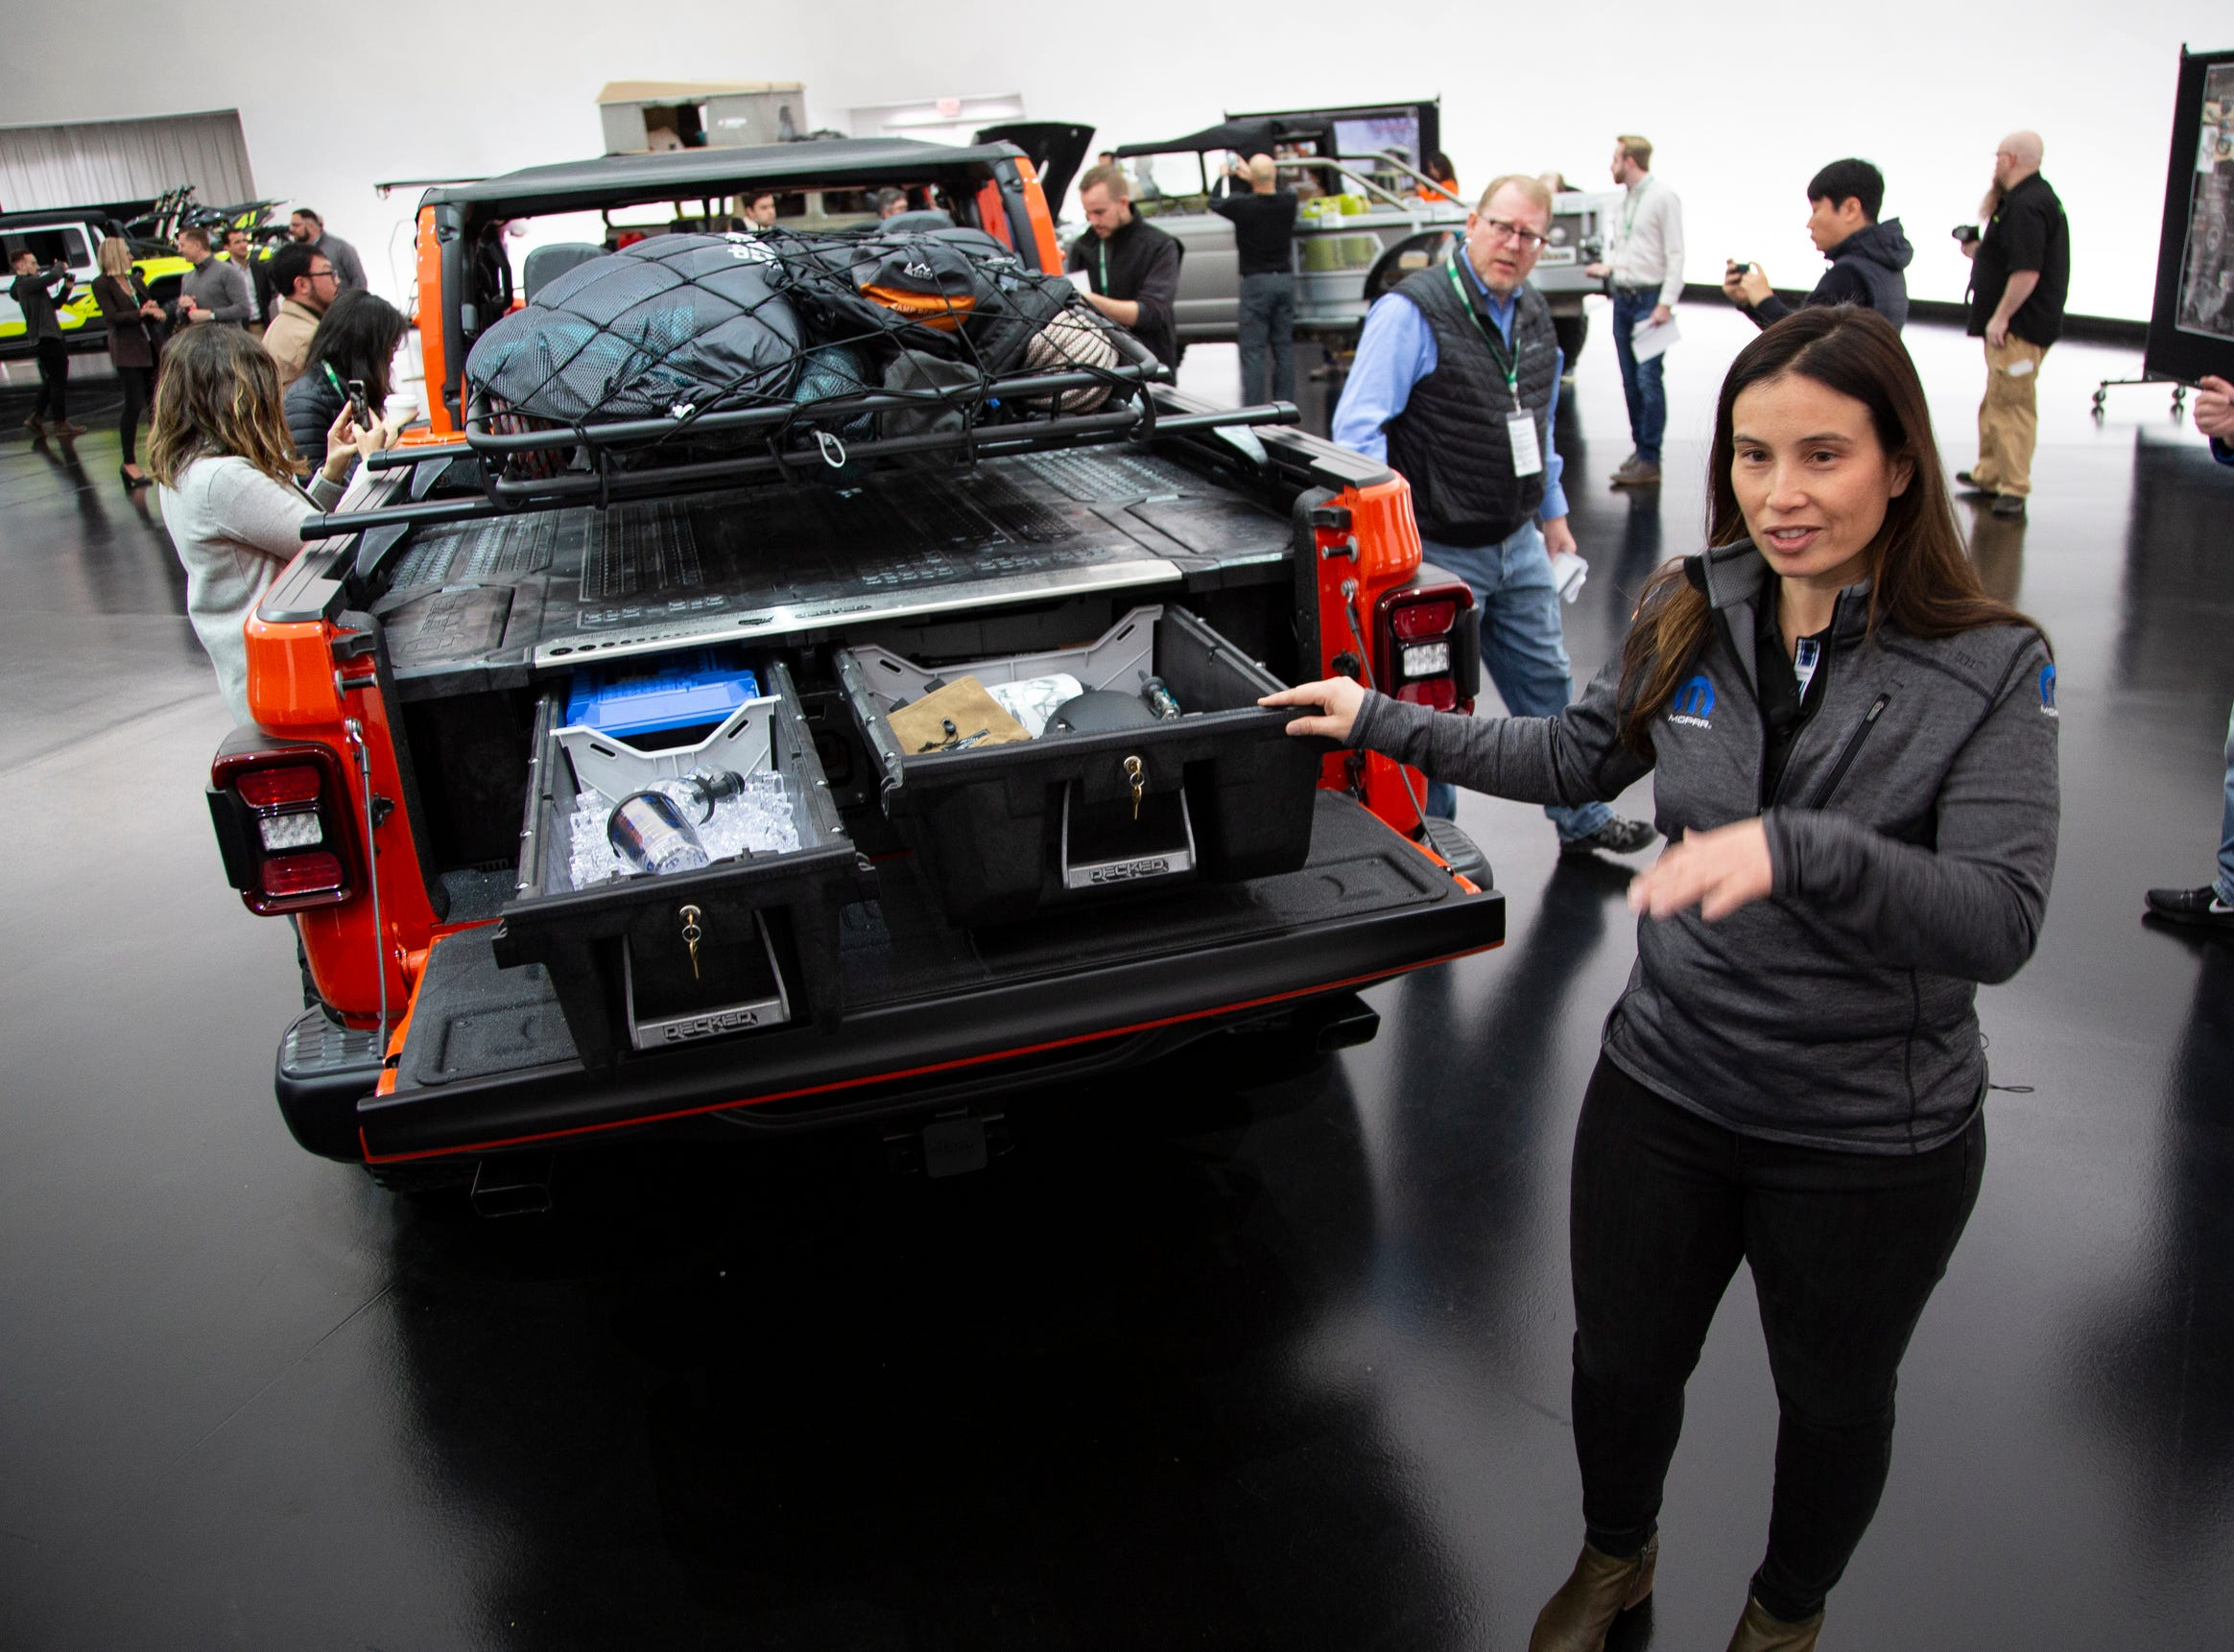 Jeep and Mopar brands debut six concept vehicles including the Jeep Gladiator Gravity Friday, April 5, 2019 at the Fiat Chrysler Tech Center and headquarters for the 53rd annual Moab Easter Jeep Safari. The Jeep Gladiator Gravity is a rock-climber-themed concept colored in Punk'N Metallic Orange. Steel tube doors allow for a more open air concept. The bed offers the Mopar/Decked truck bed storage system with dual sliding drawers for lockable cargo demonstrated by Kim Mathers, Head of Mopar Performance and Accessories Portfolio.